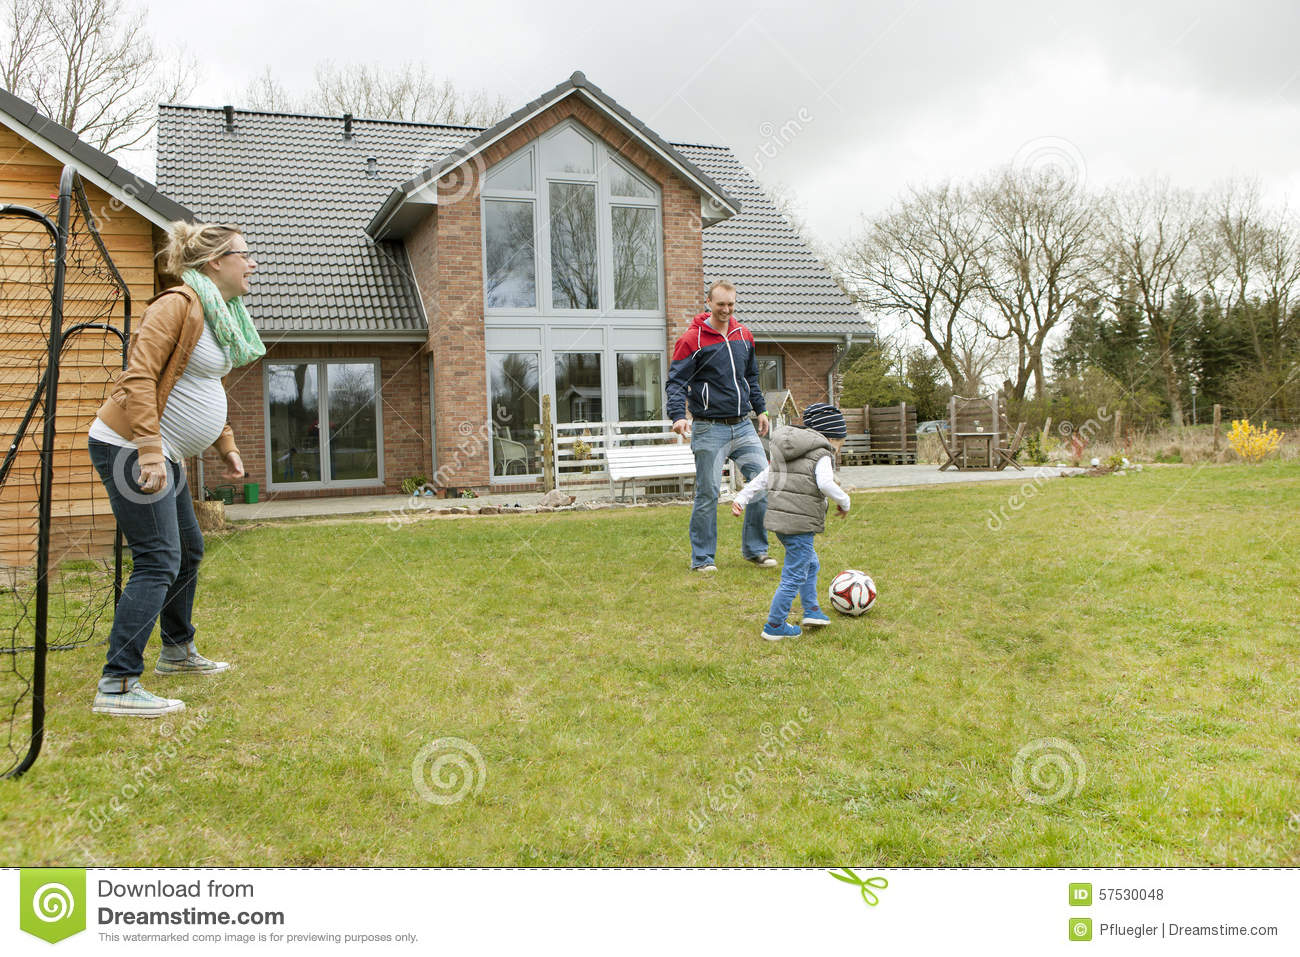 Image Result For Soccer Haus